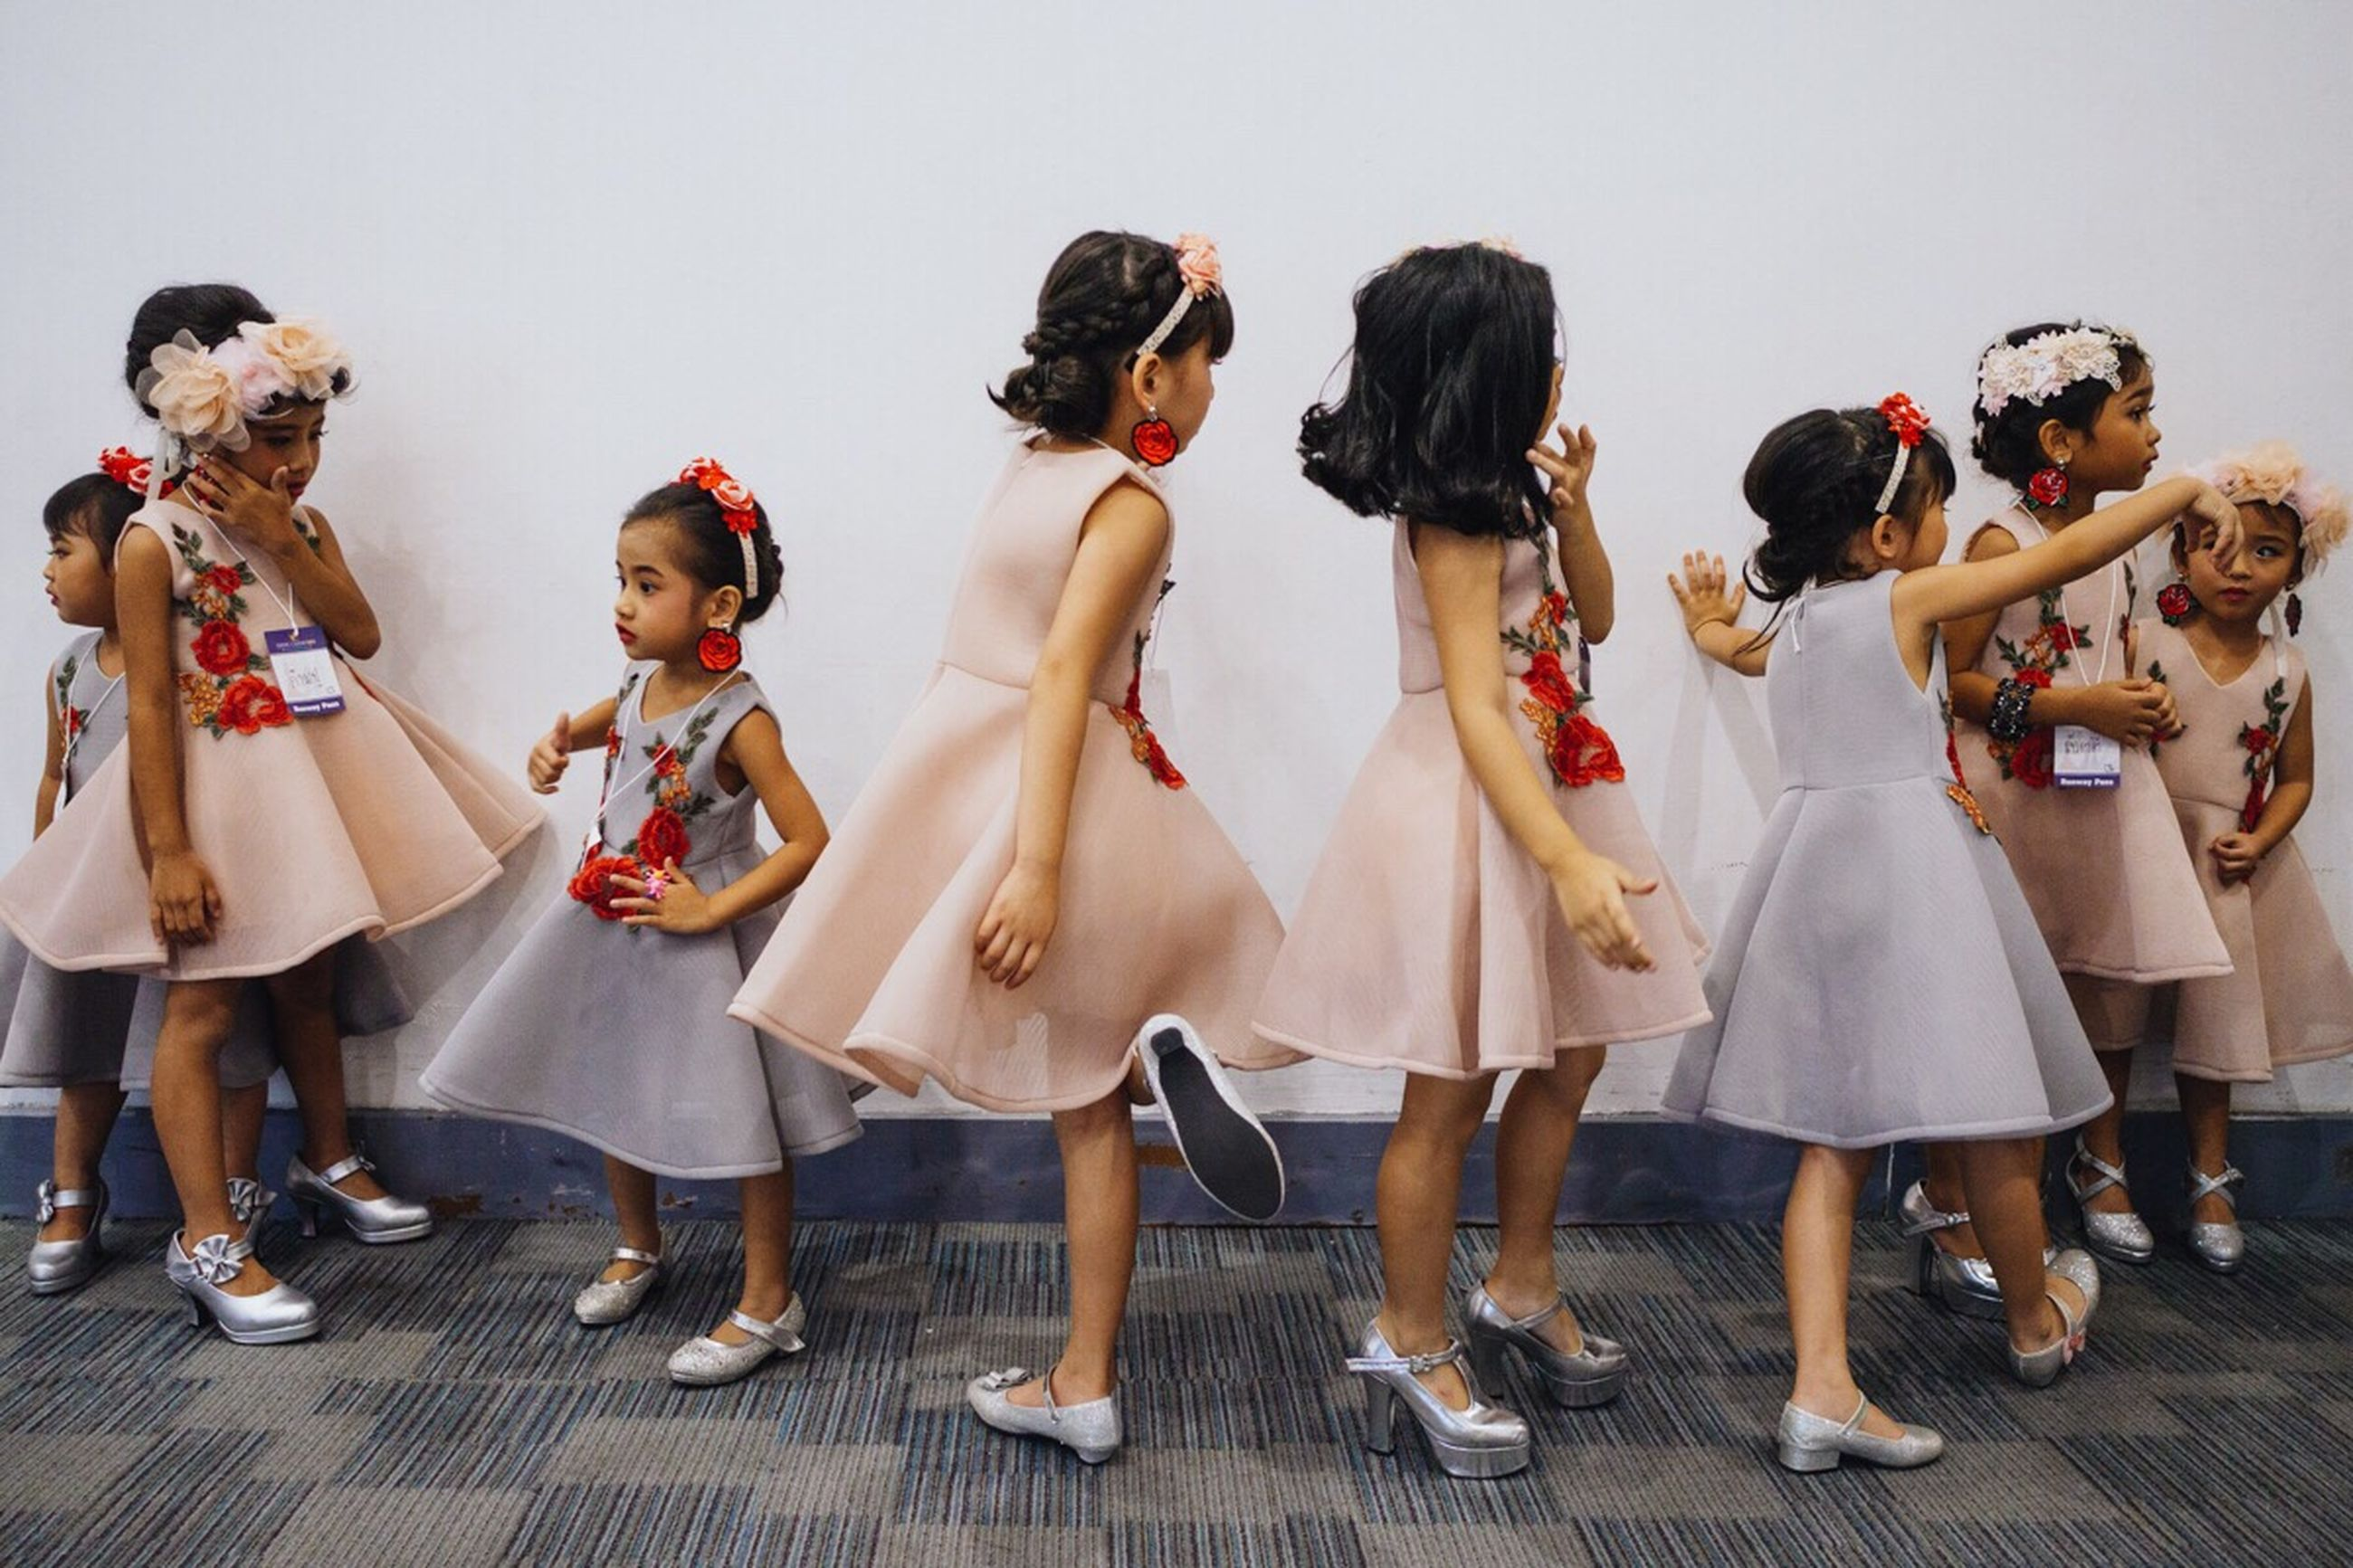 group of people, women, fashion, child, females, clothing, girls, people, dress, full length, real people, celebration, togetherness, childhood, adult, standing, lifestyles, leisure activity, dancing, bridesmaid